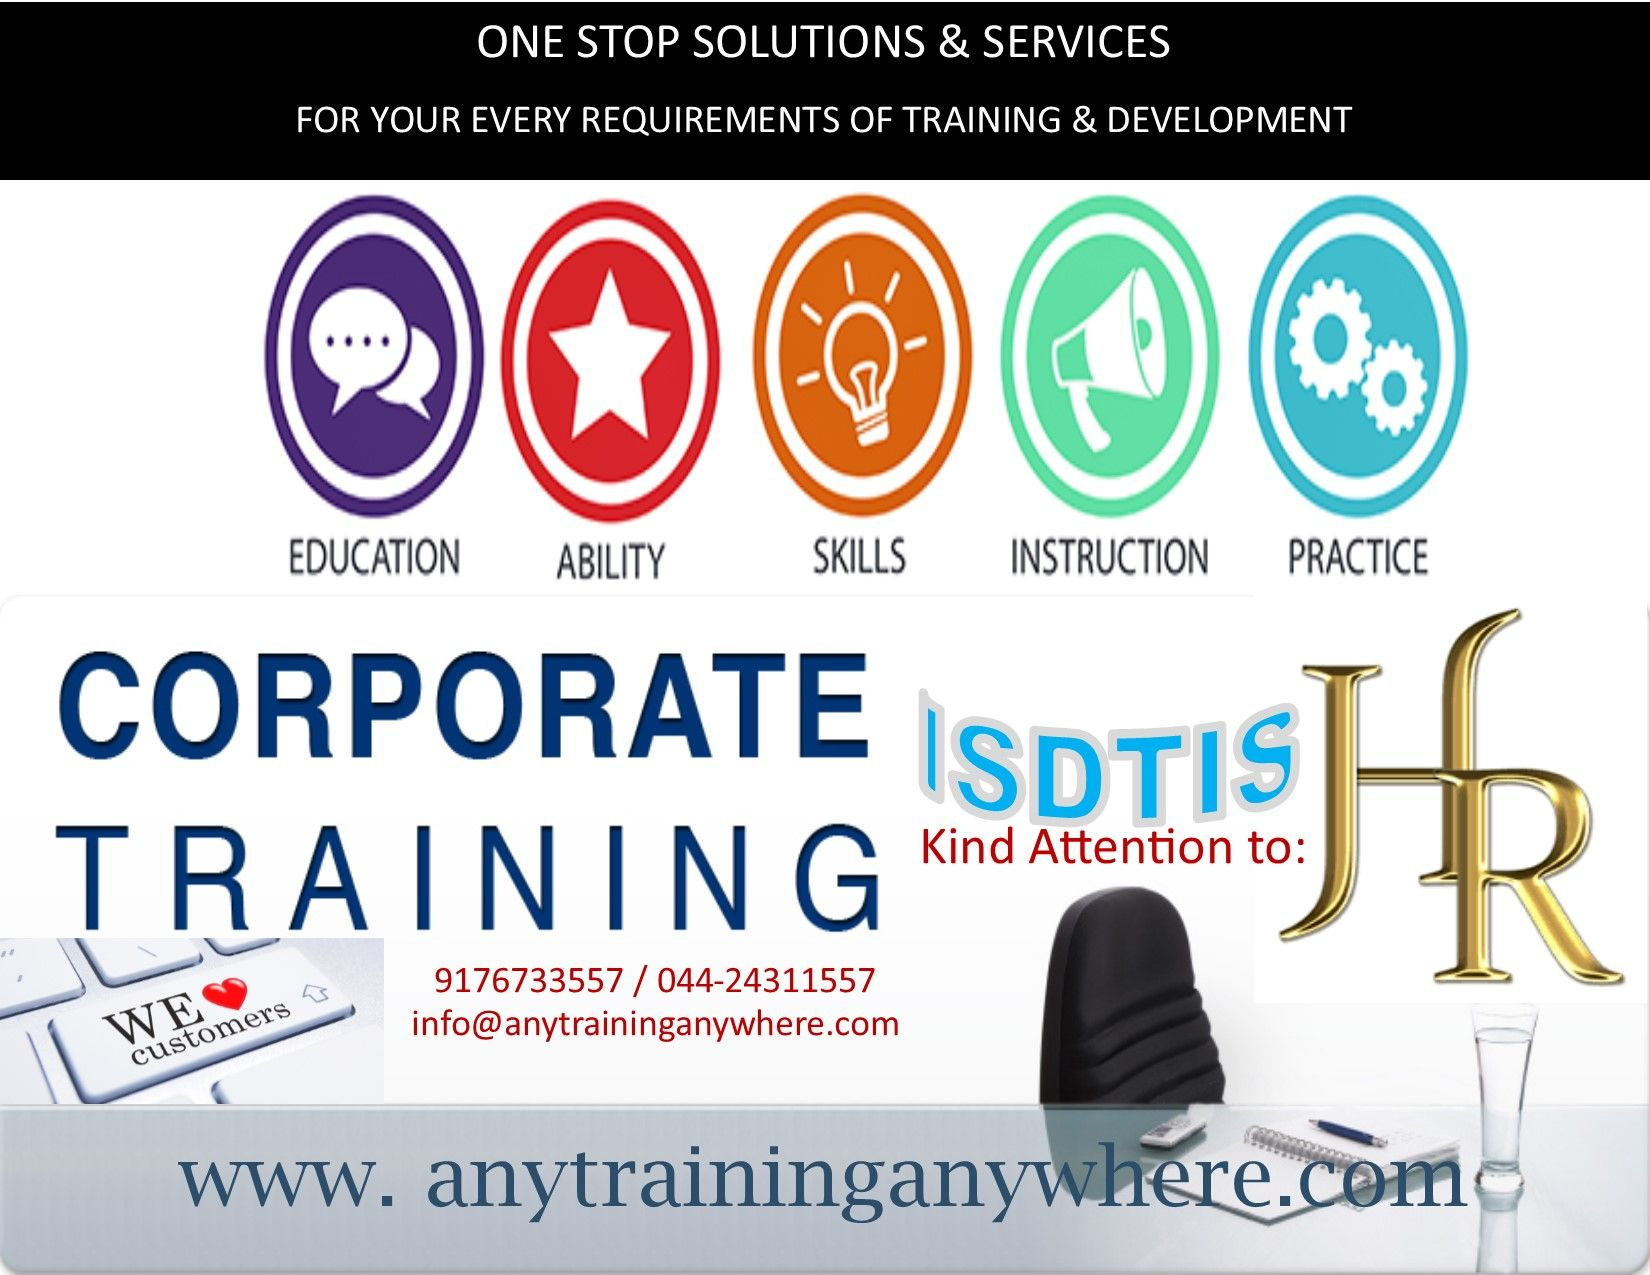 Corporate Training Services In Chennai Anytraininganywhere